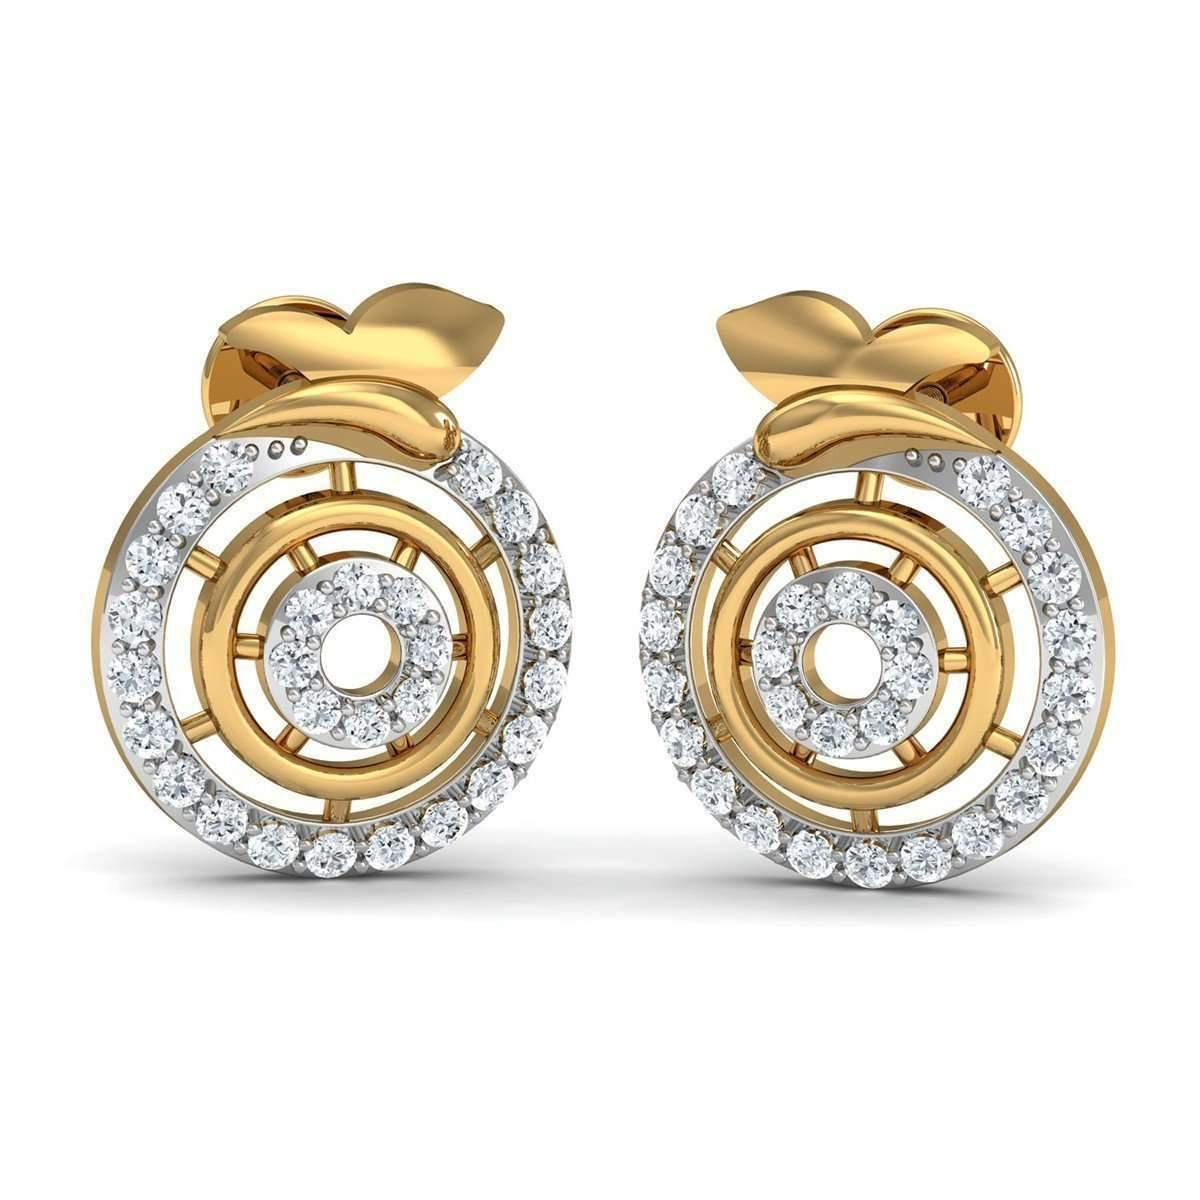 Diamoire Jewels Premium Diamonds and Hand-carved 14kt Rose Gold Nature Inspired Earrings PeoSGiUb7l